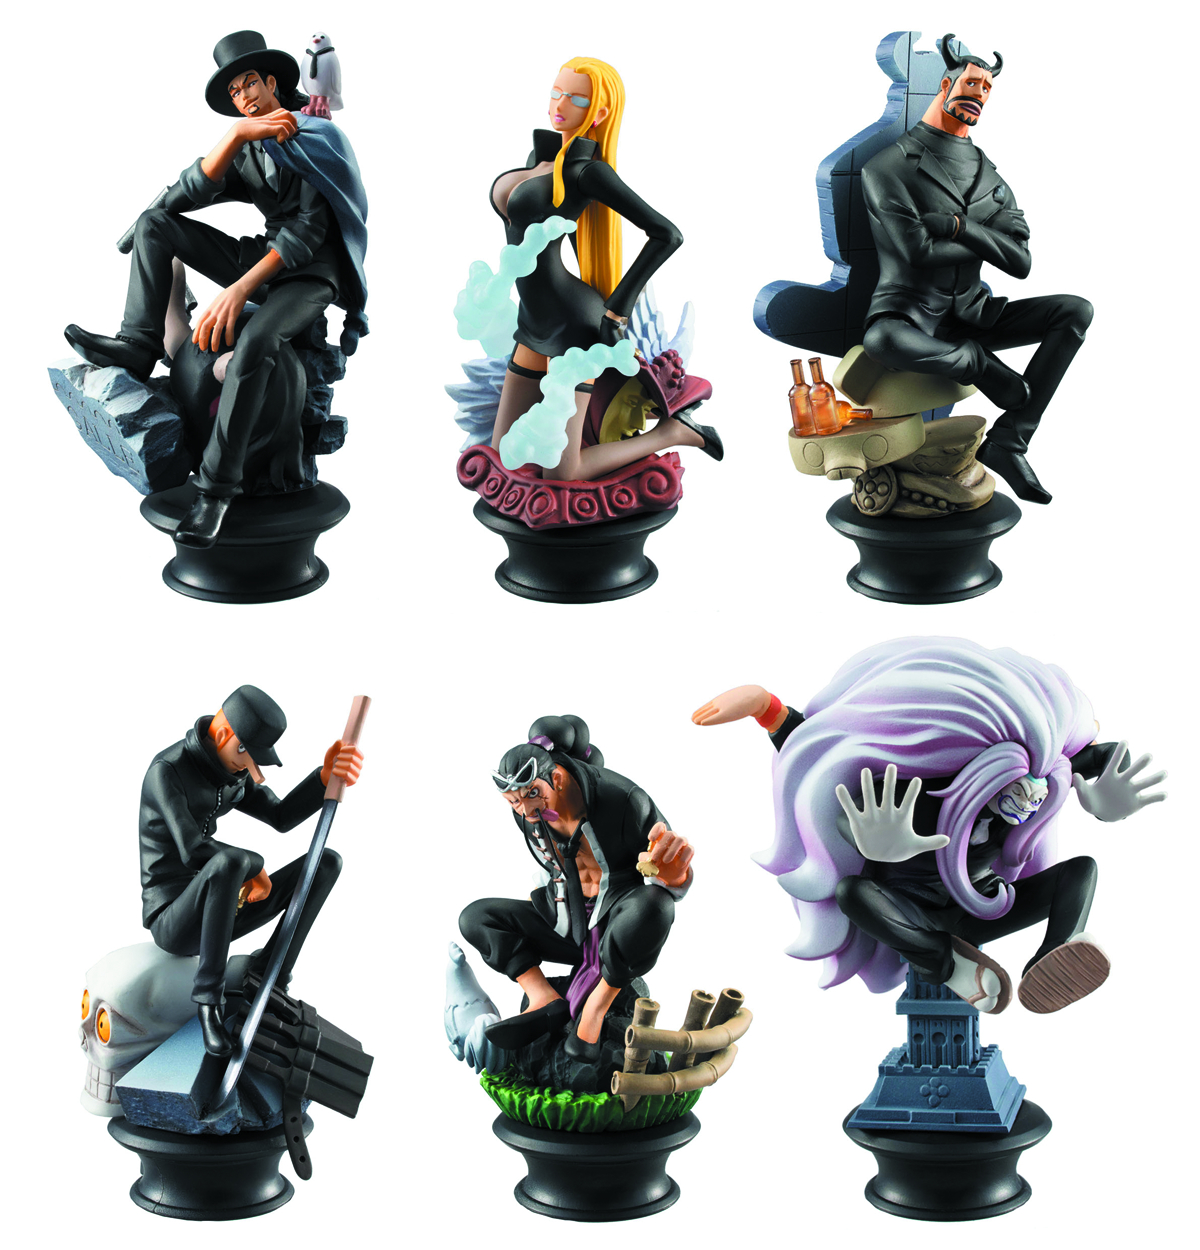 ONE PIECE CHESS PIECE COLL 6PC BMB DS VOL 4